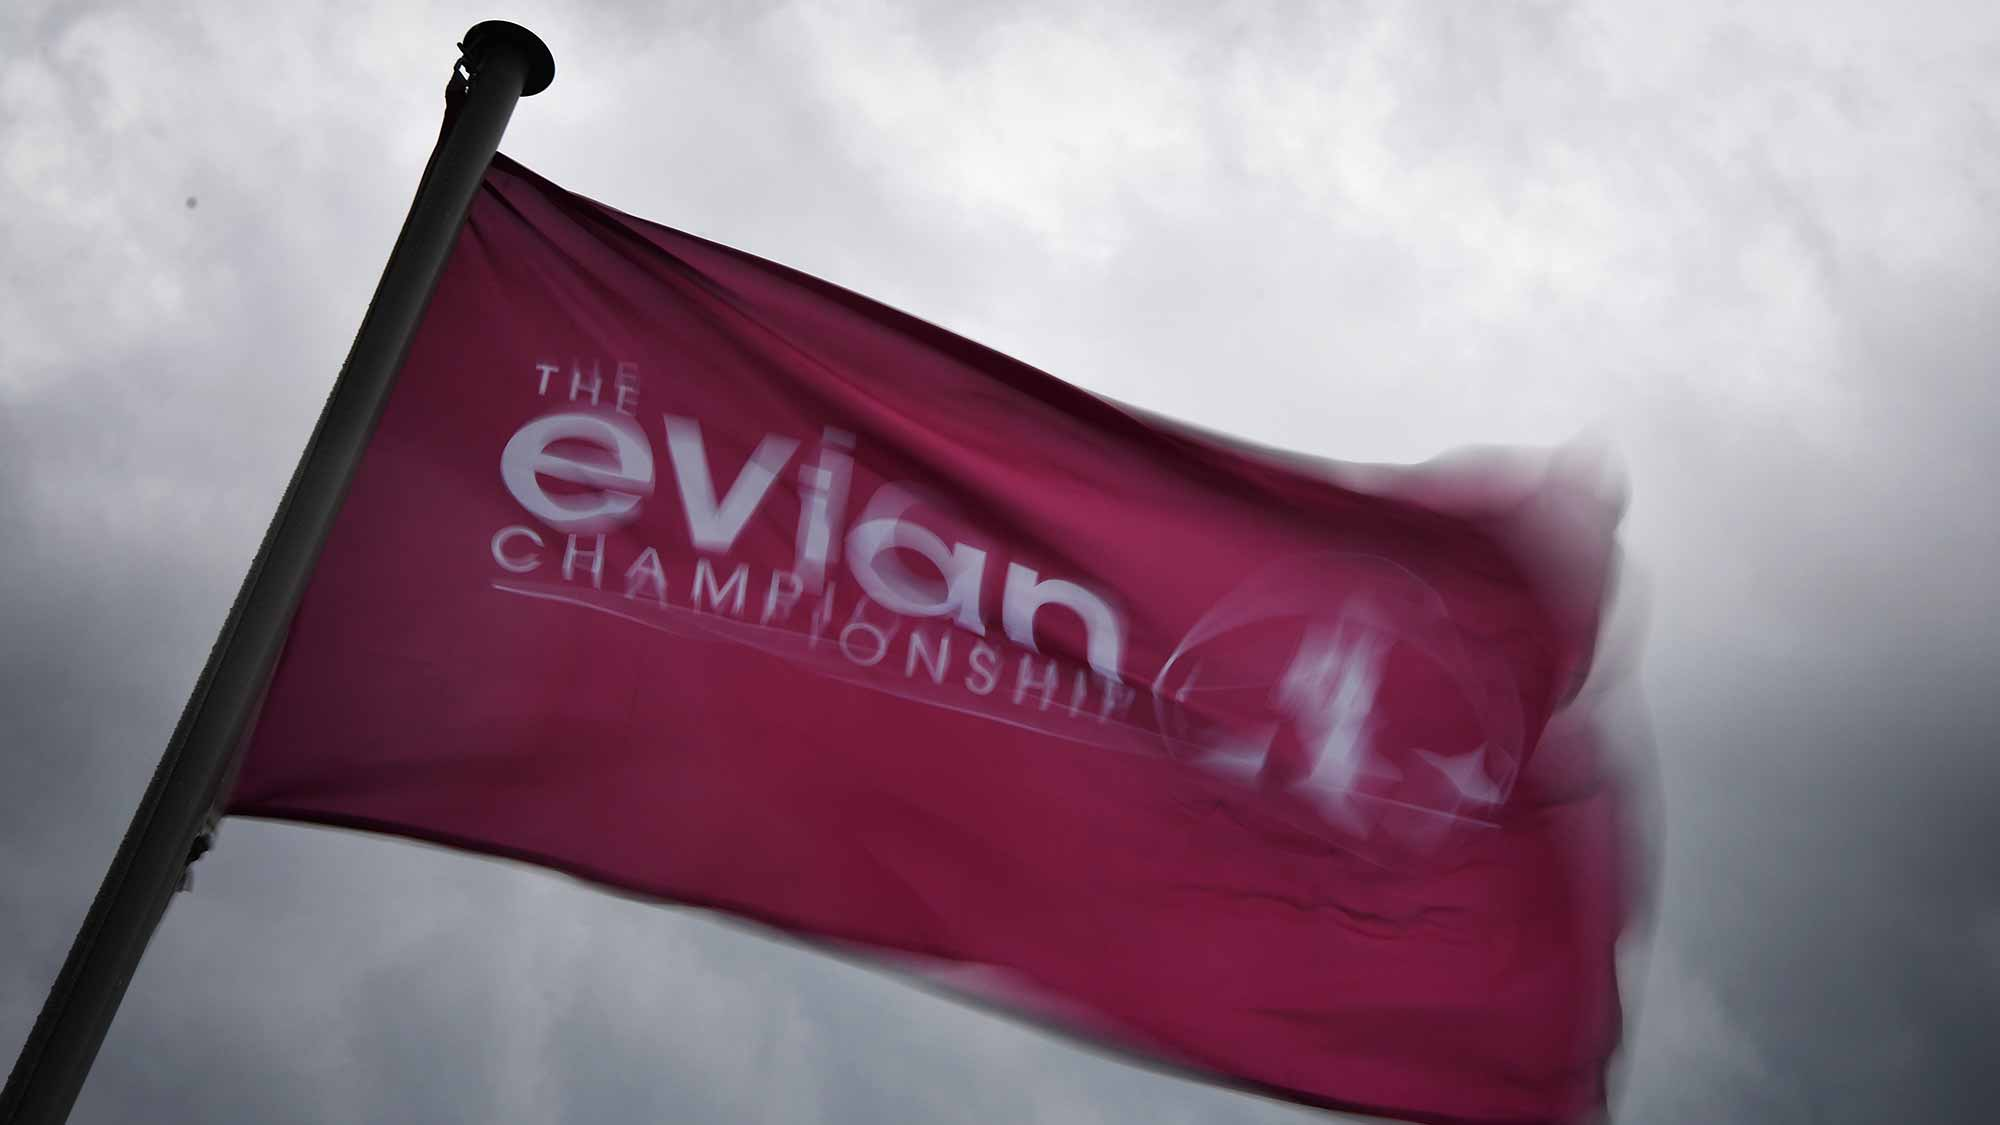 A flag flies in the strong wind during the first round of The Evian Championship